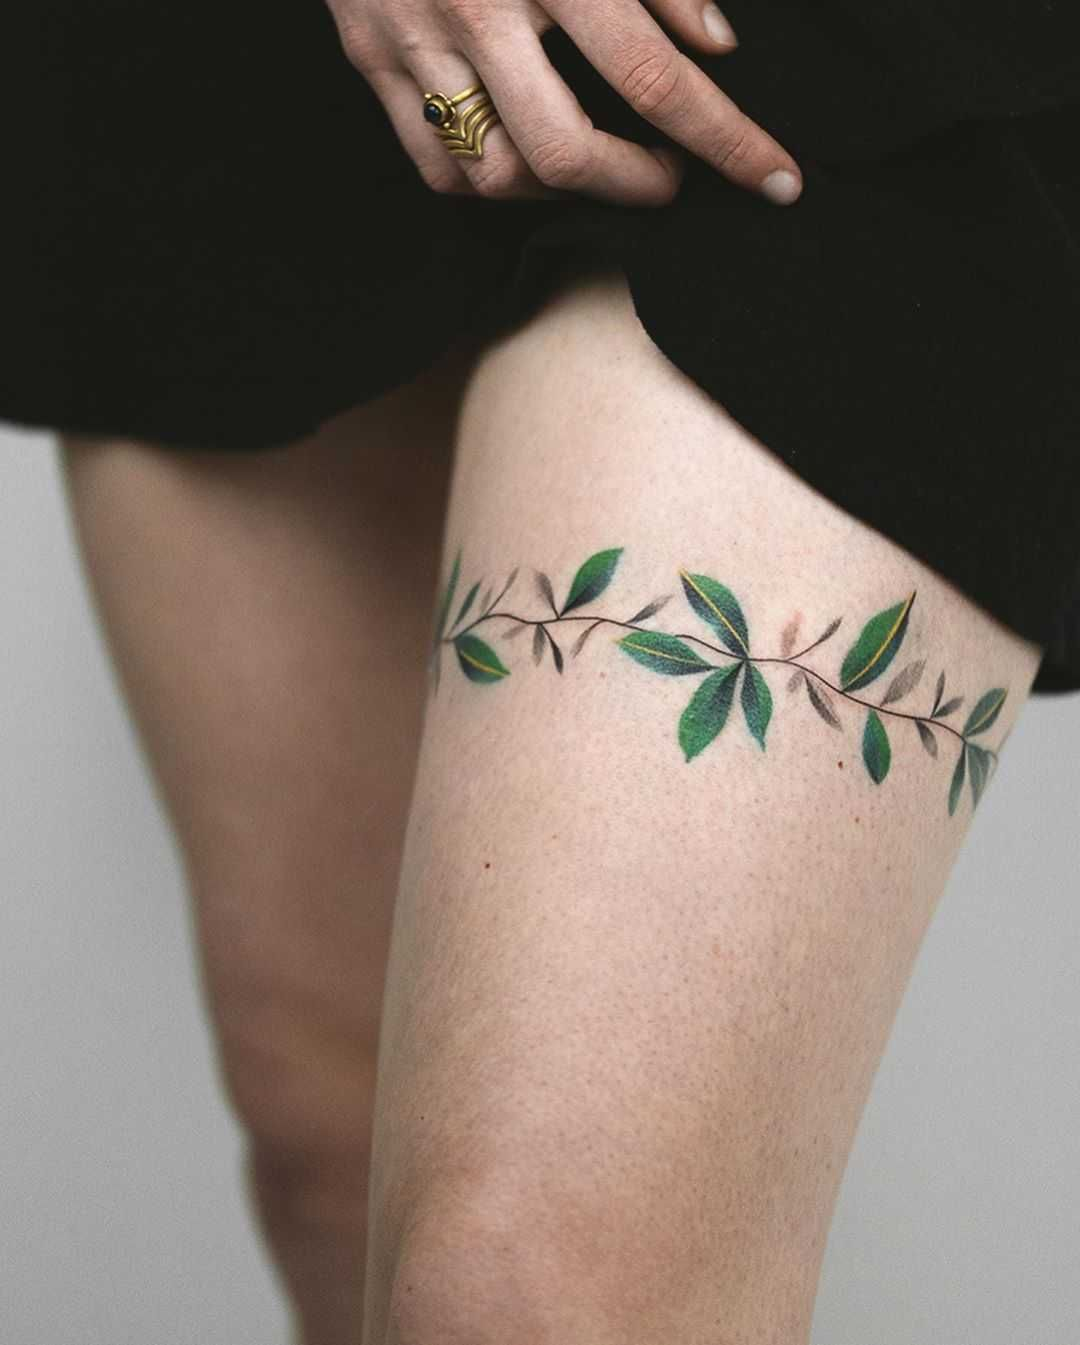 Leaves Wrapped Around The Left Thigh By Rey Jasper In 2020 Tattoos Leg Tattoos Cute Tattoos